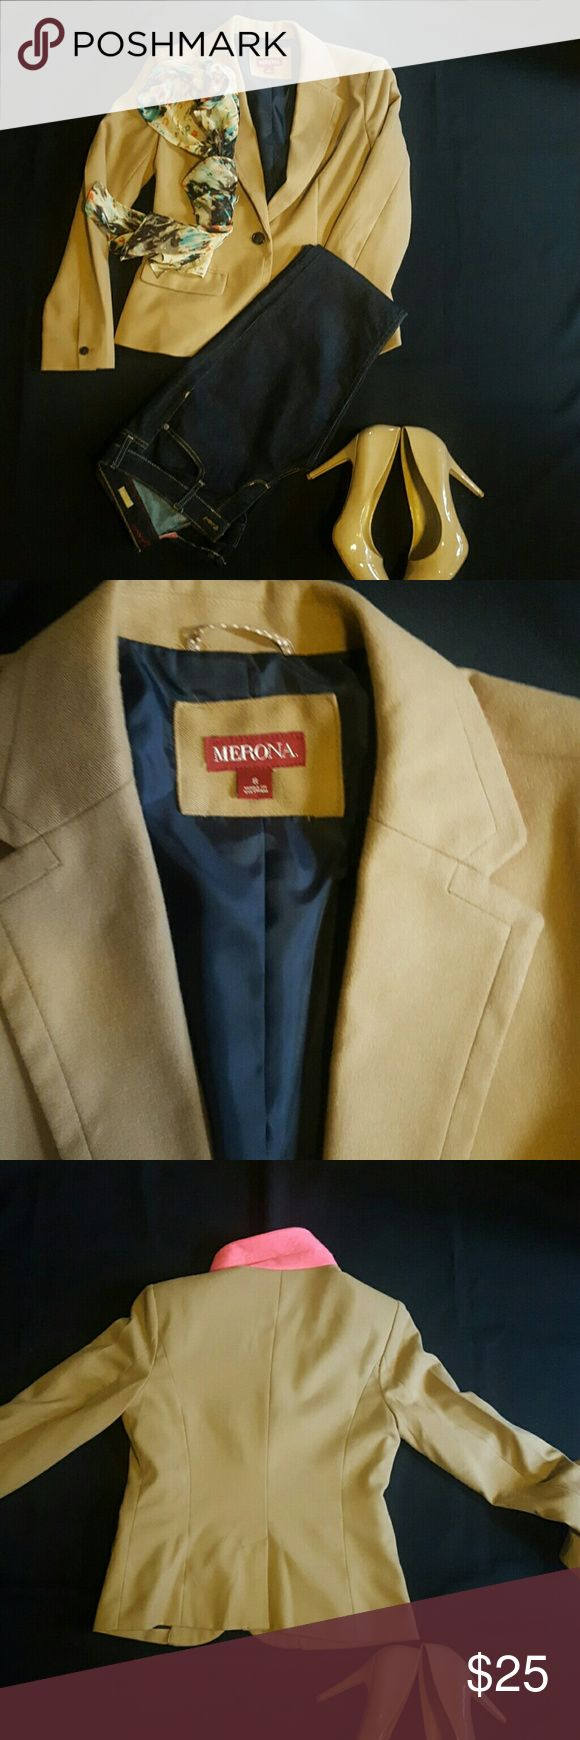 Camel Blazer Size 8 camel colored blazer. Great blend of materials for a slender fitted look. Can be dressed up or worn casually. The collar flipped up offers a nice vibrant color of pink. Two pockets in the front with open flap in the back. Merona Jackets & Coats Blazers